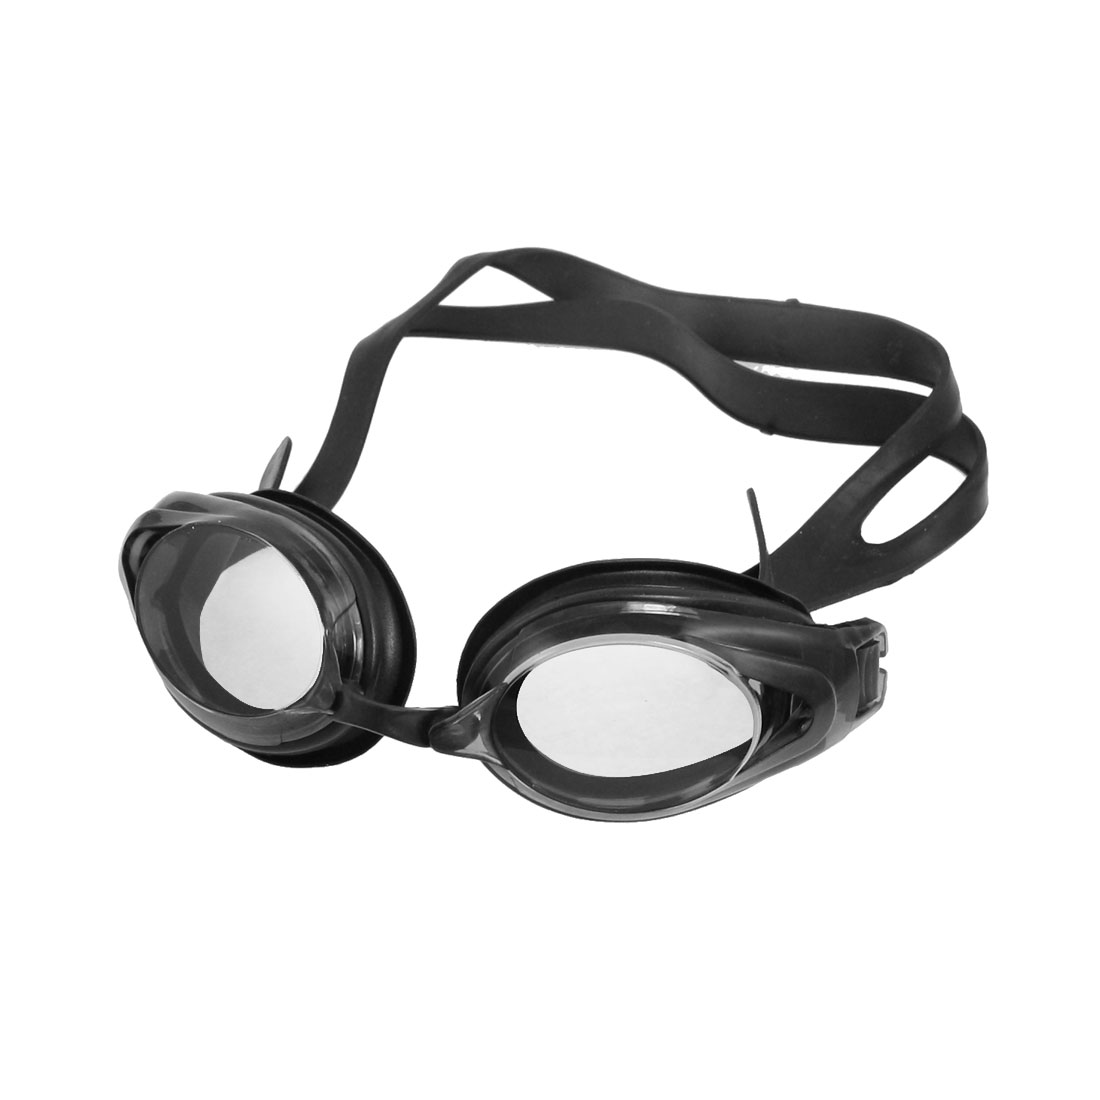 Unique Bargains Unisex Black Silicone Strap Swimming Goggles w Earplug + Nose Clips by